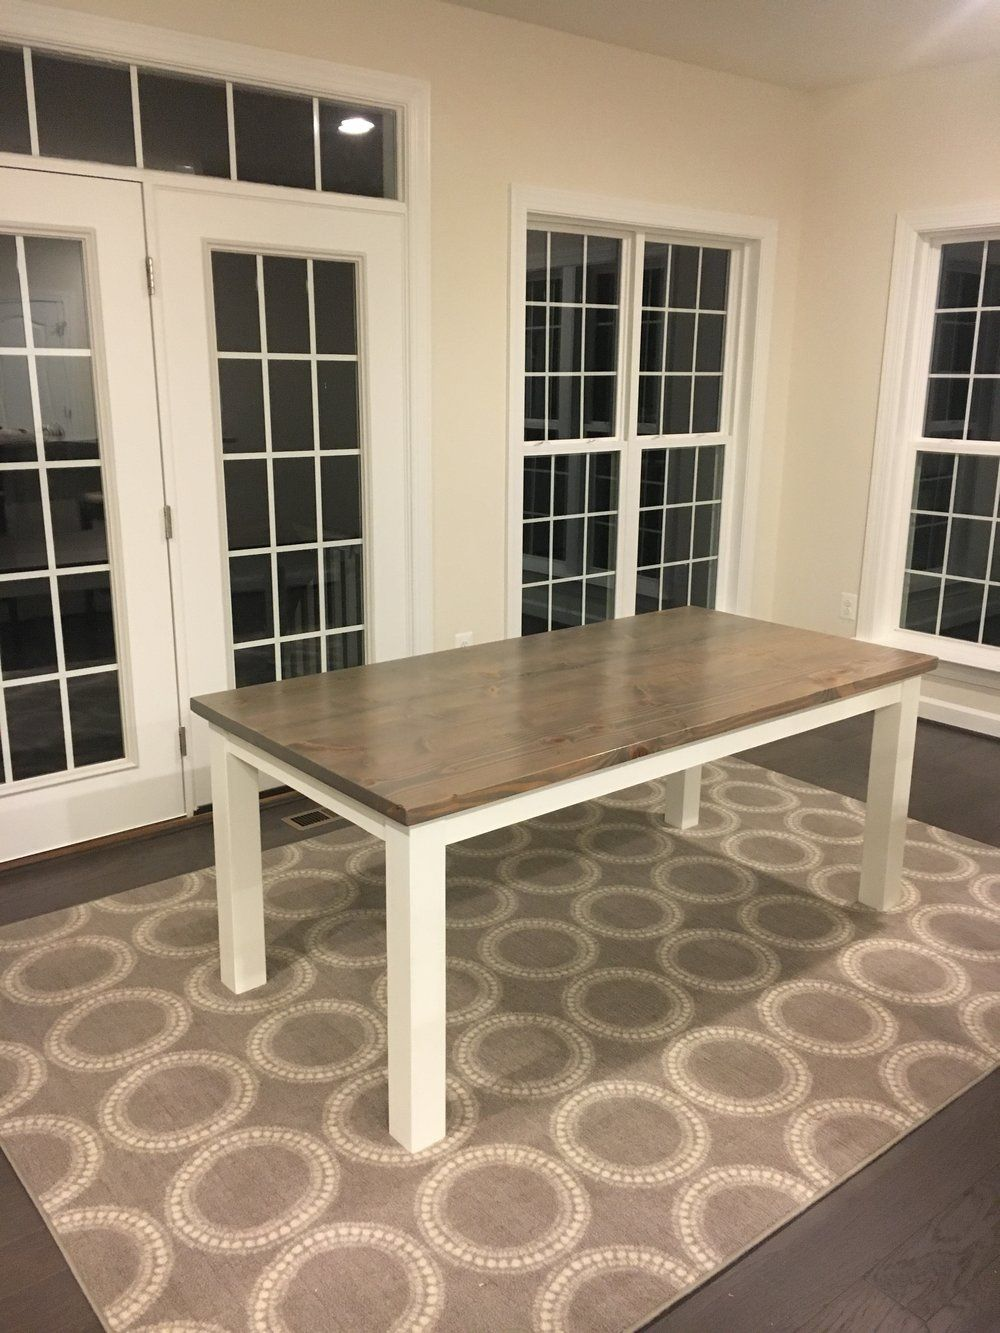 6 farmhouse table classic grey stain white dove paint